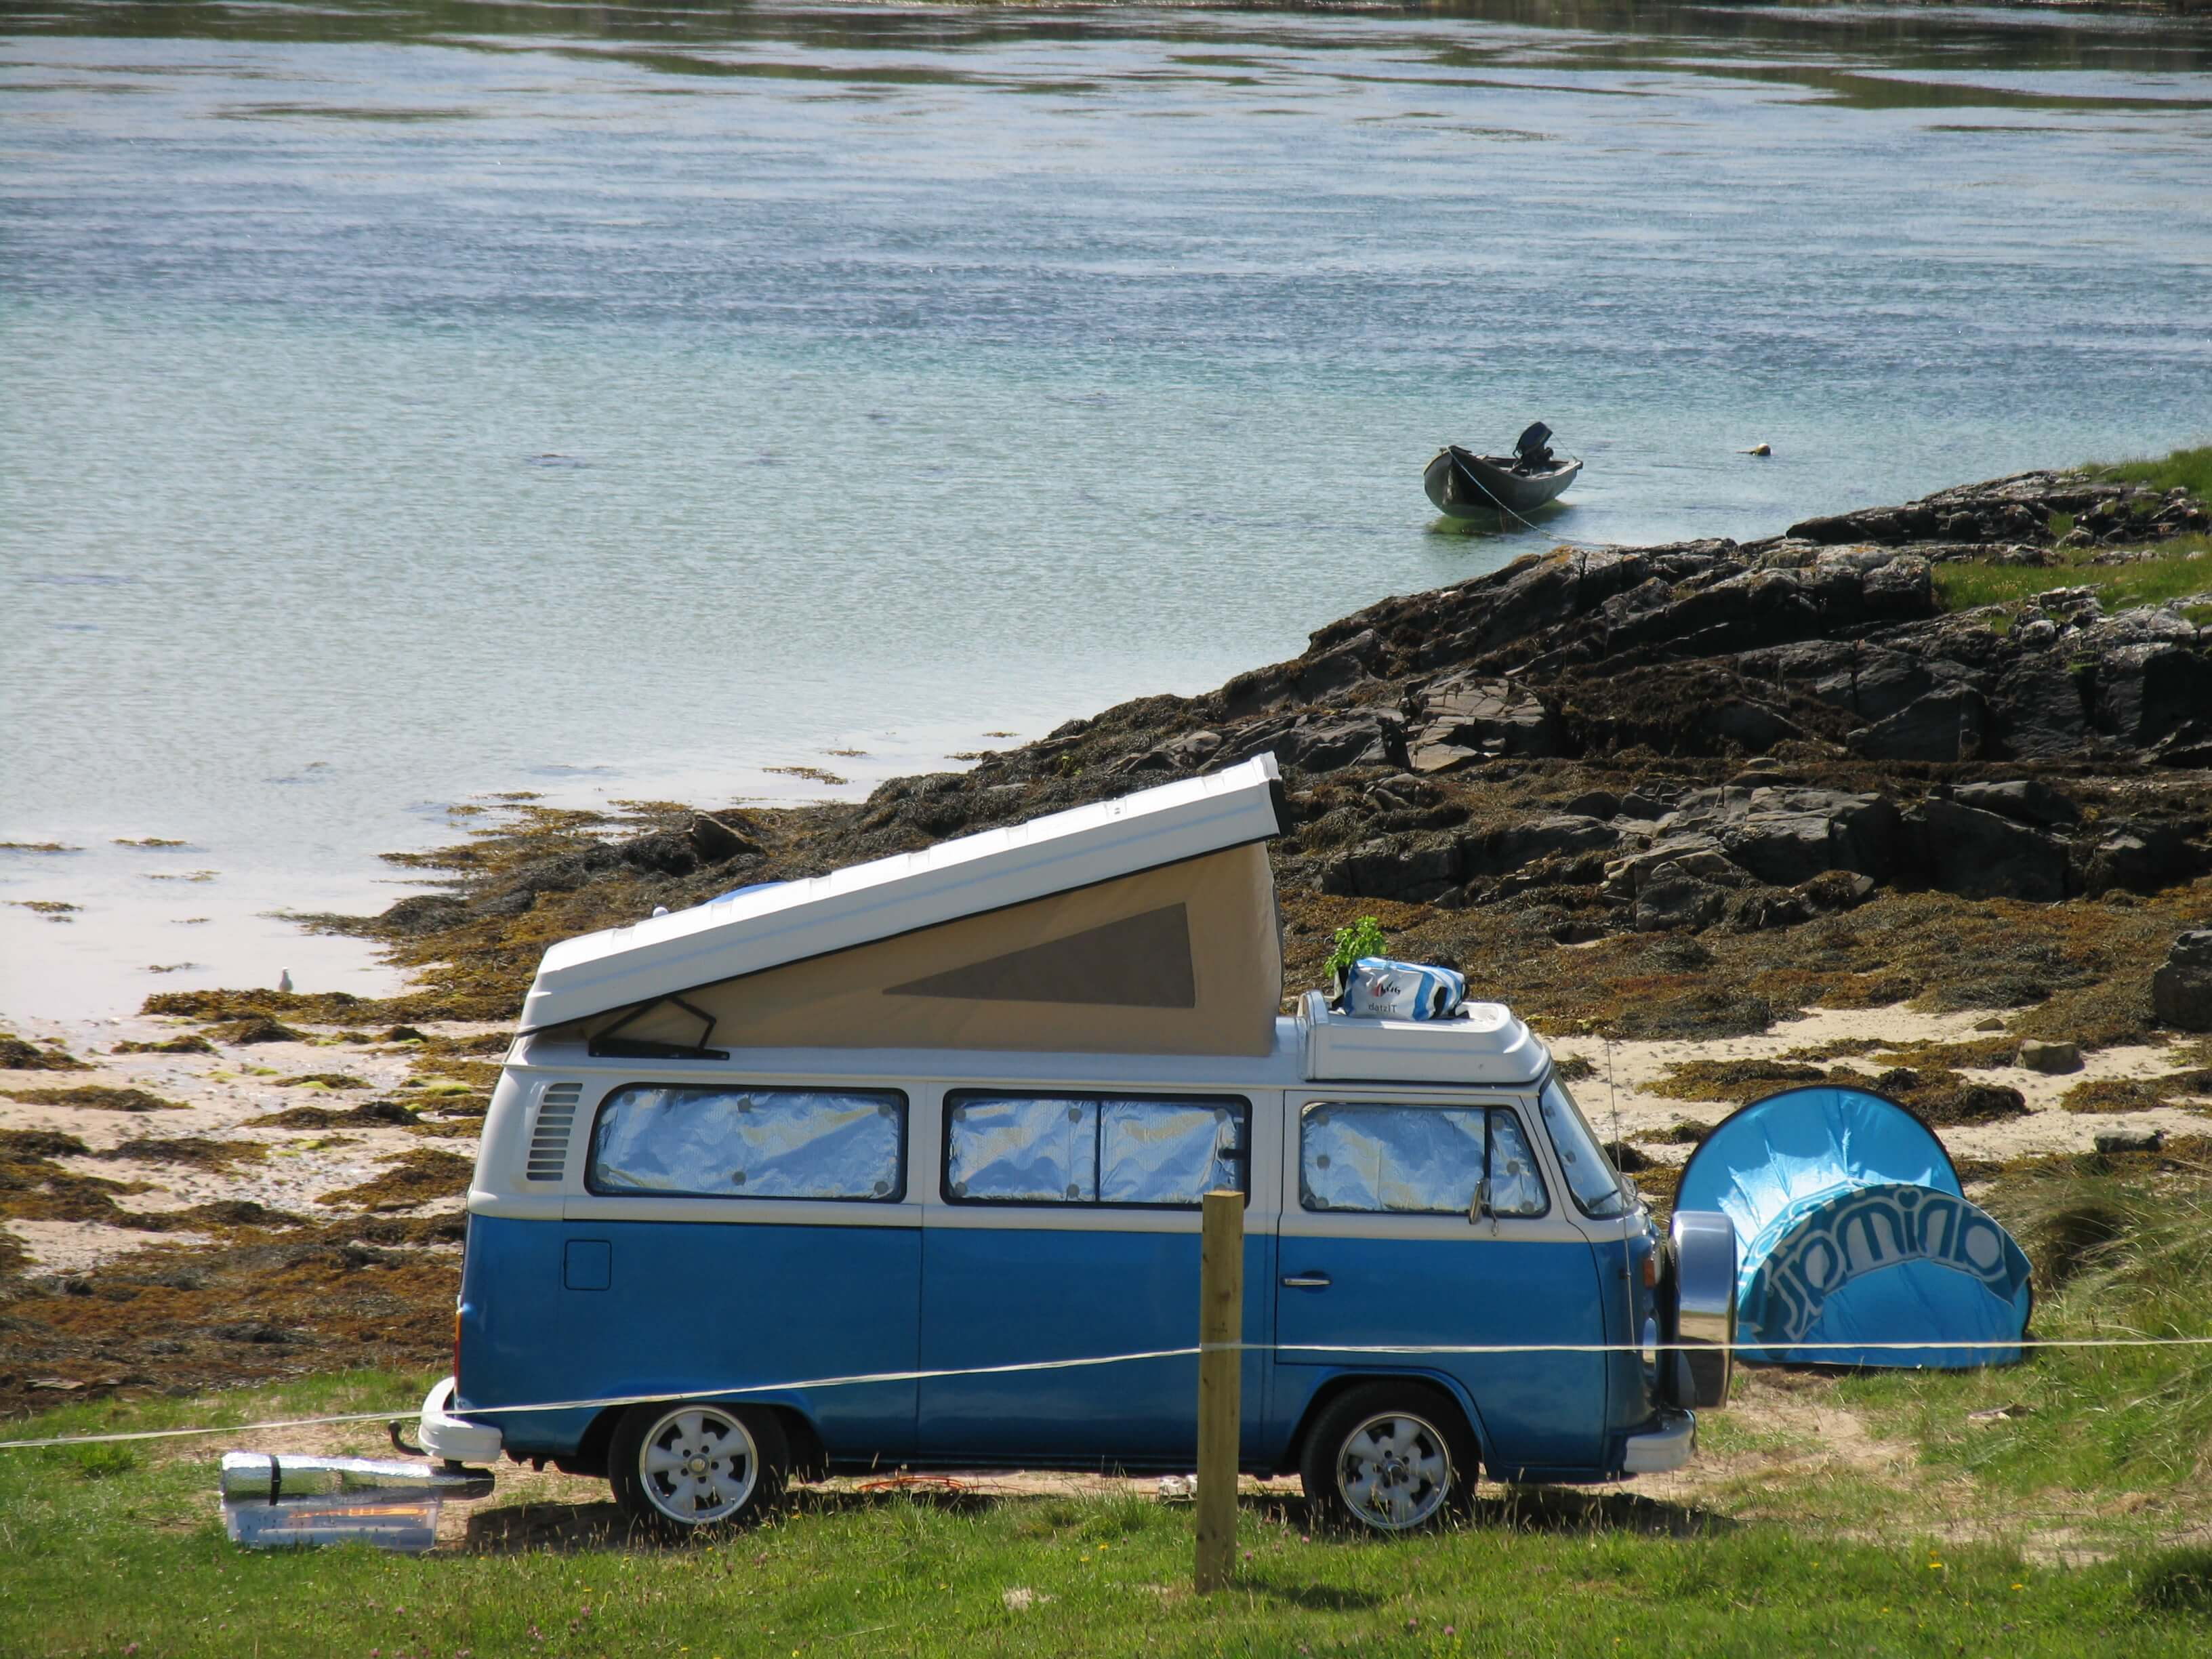 Campervan on the Wild Atlantic Way